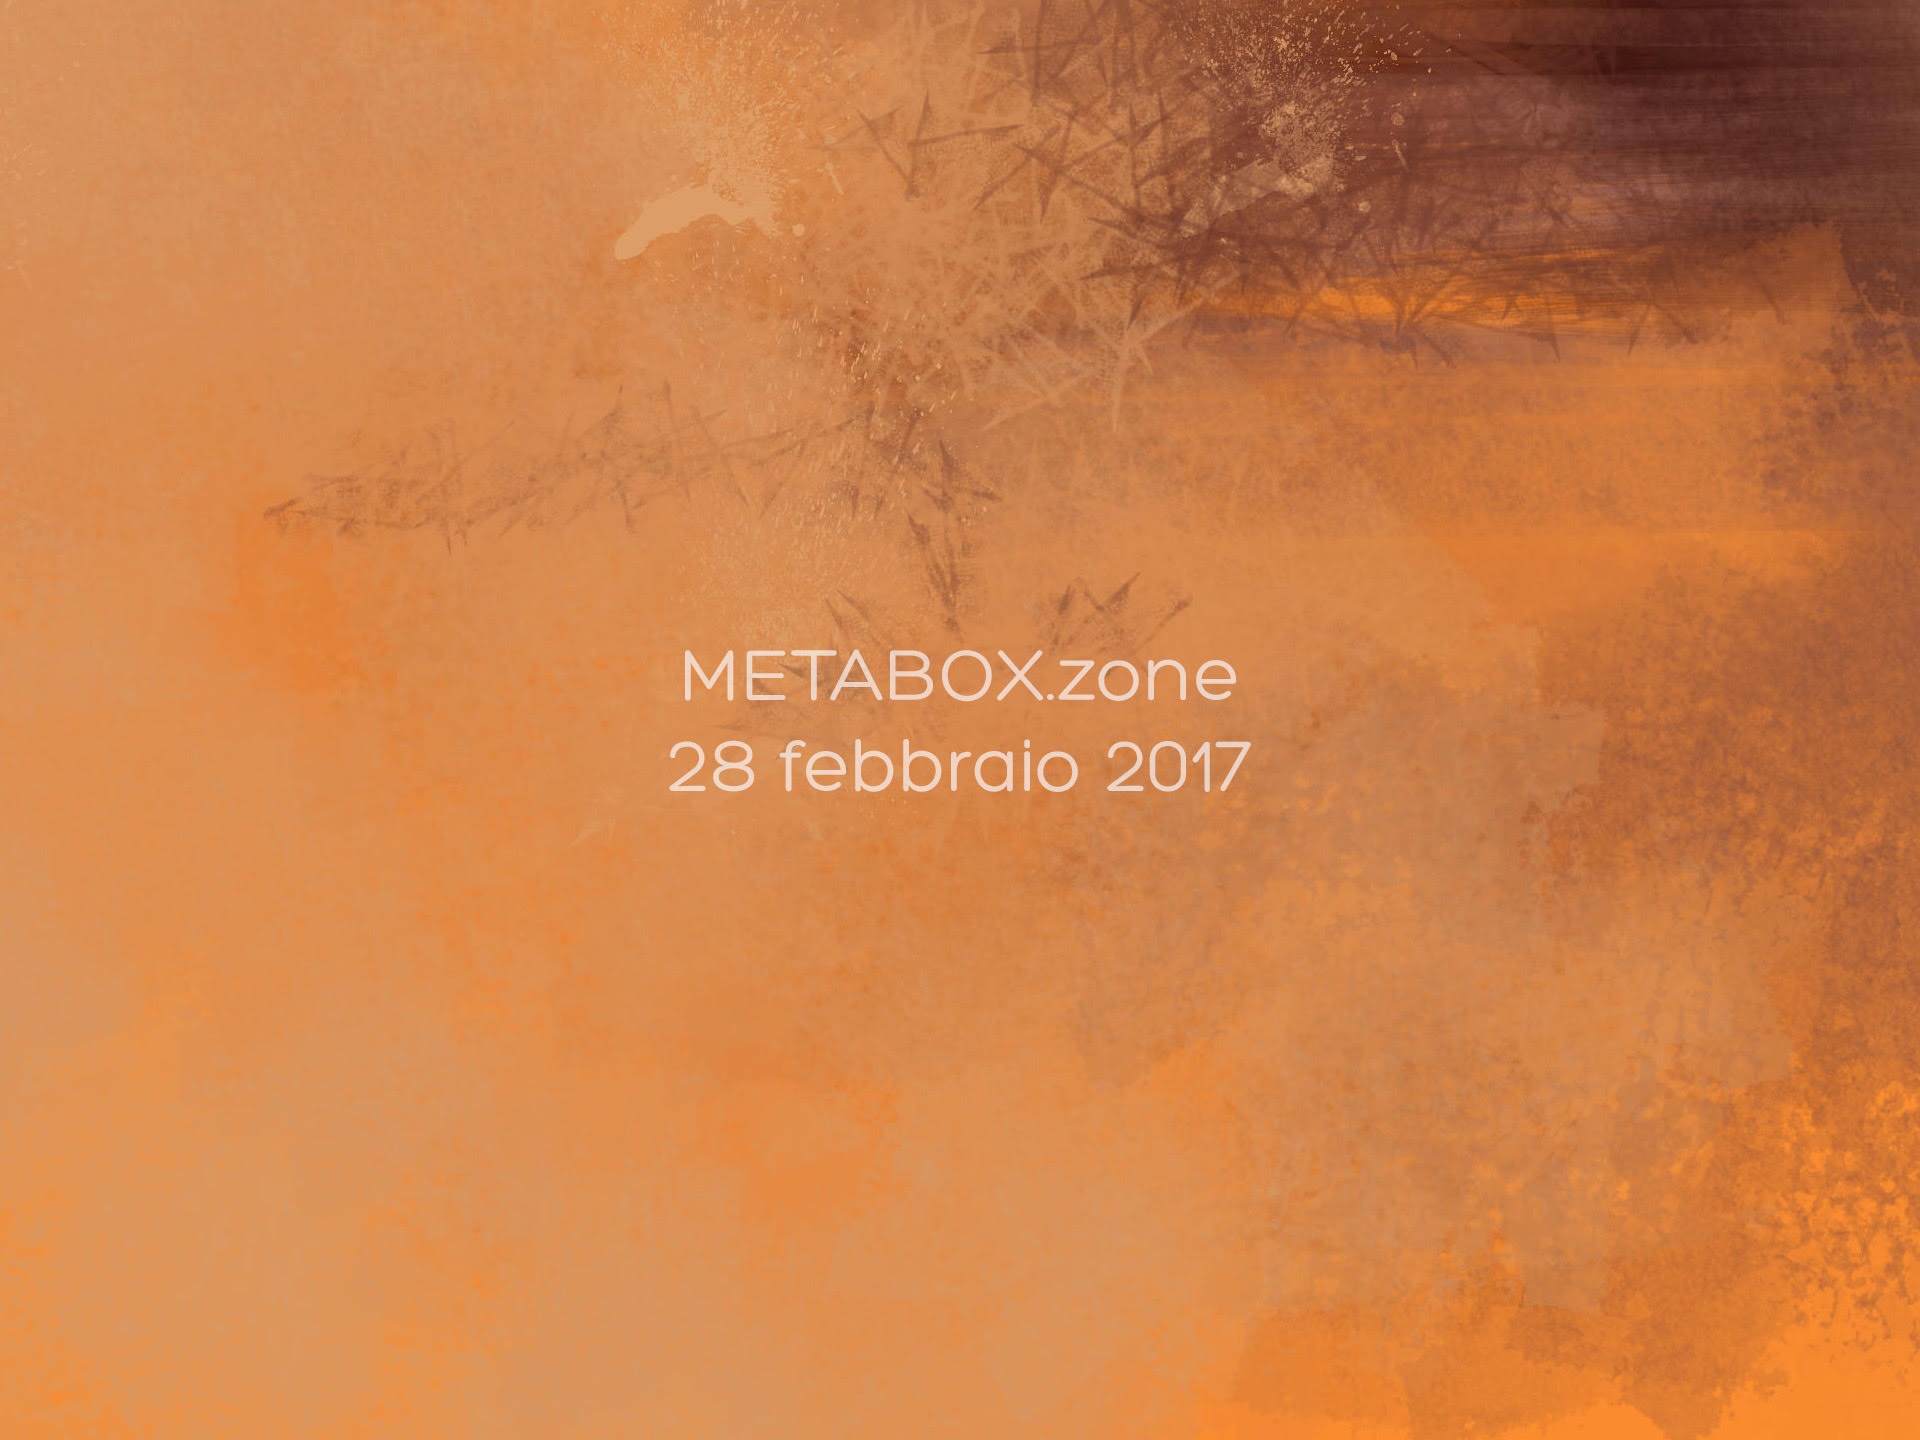 METABOX.zone 28/02/2017